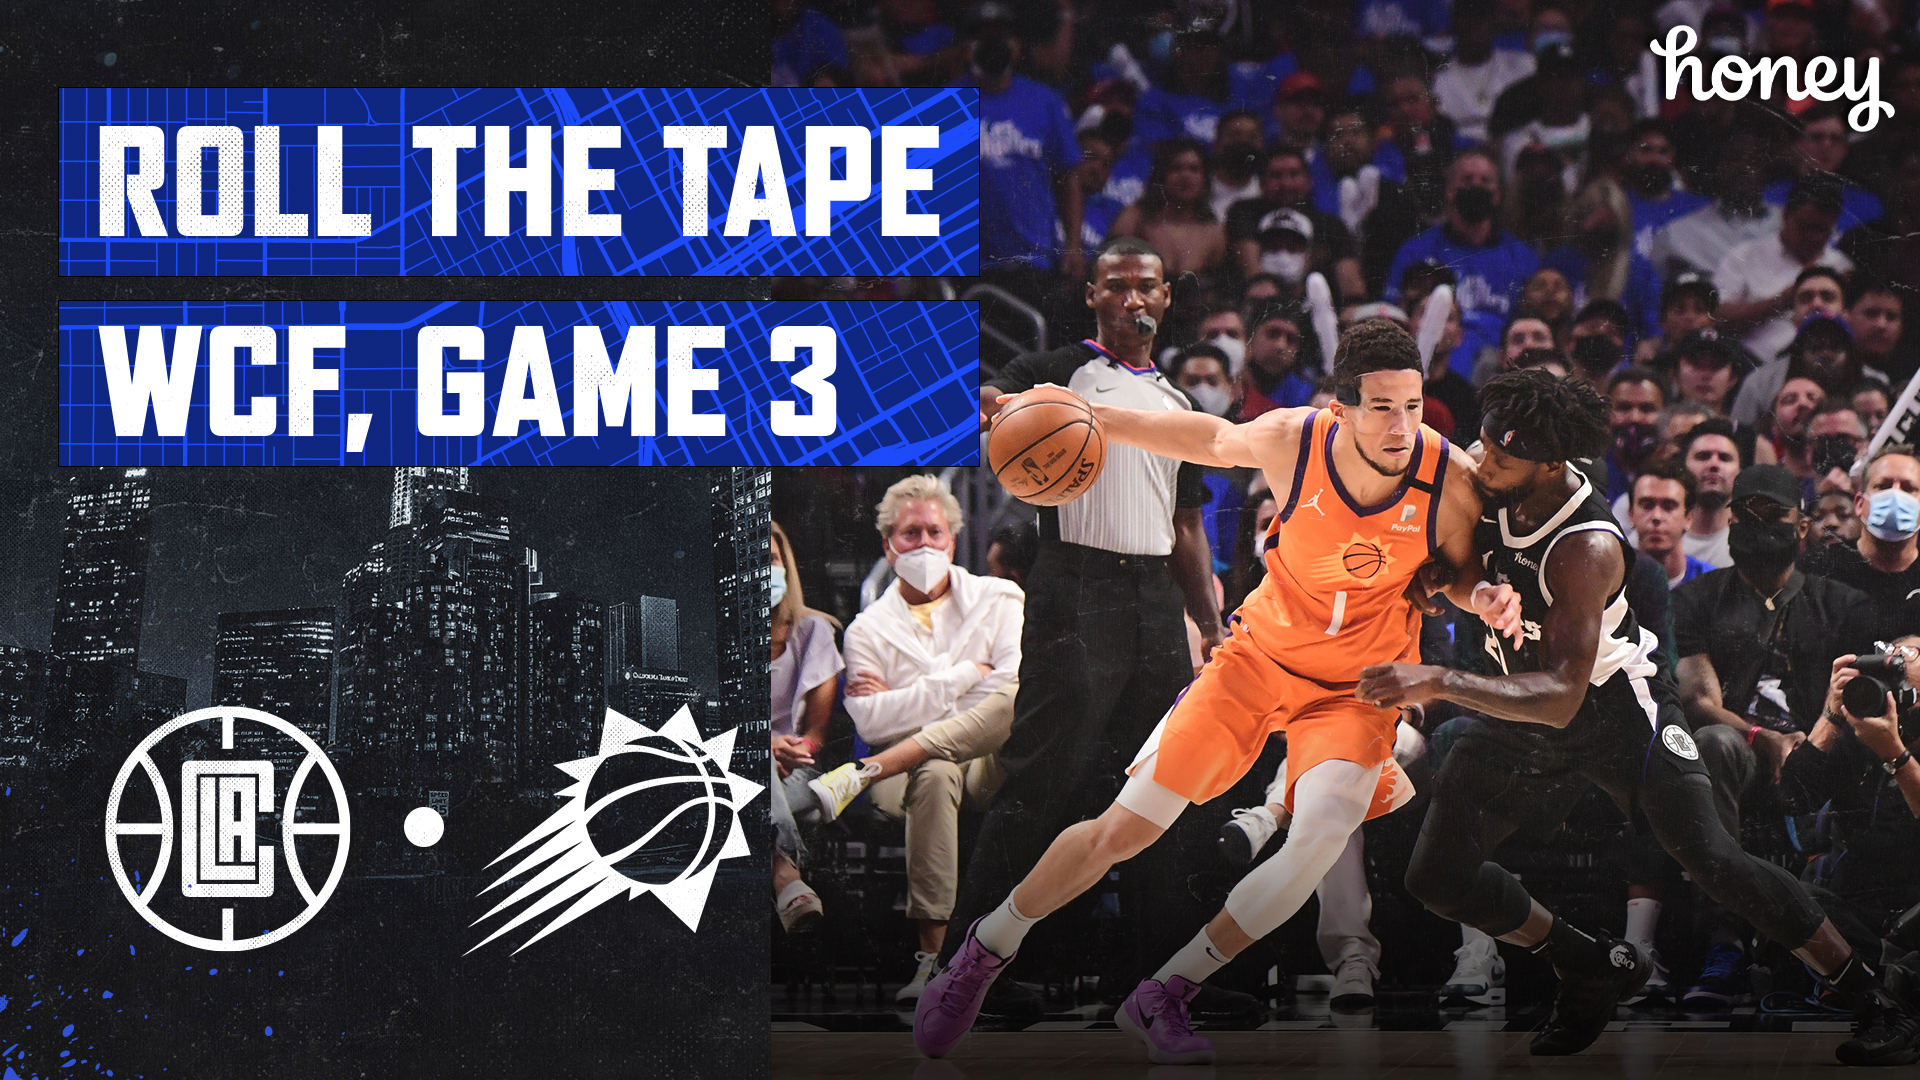 Roll The Tape | Clippers Bring the Heat in Game 3 Win in WCF vs Suns (6.24.21)